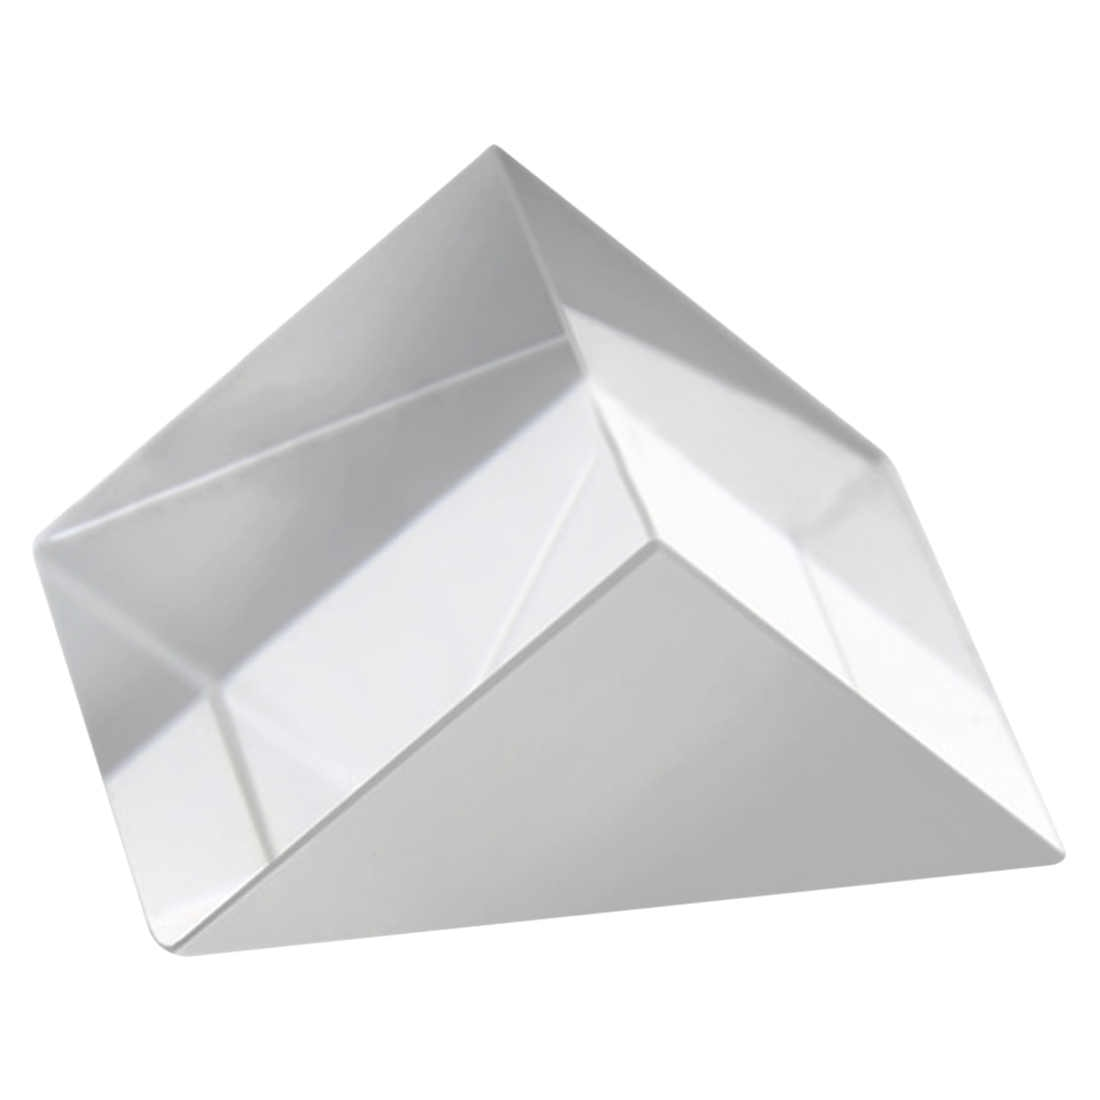 Glass Prism Equilateral/ Right Angle (Small)